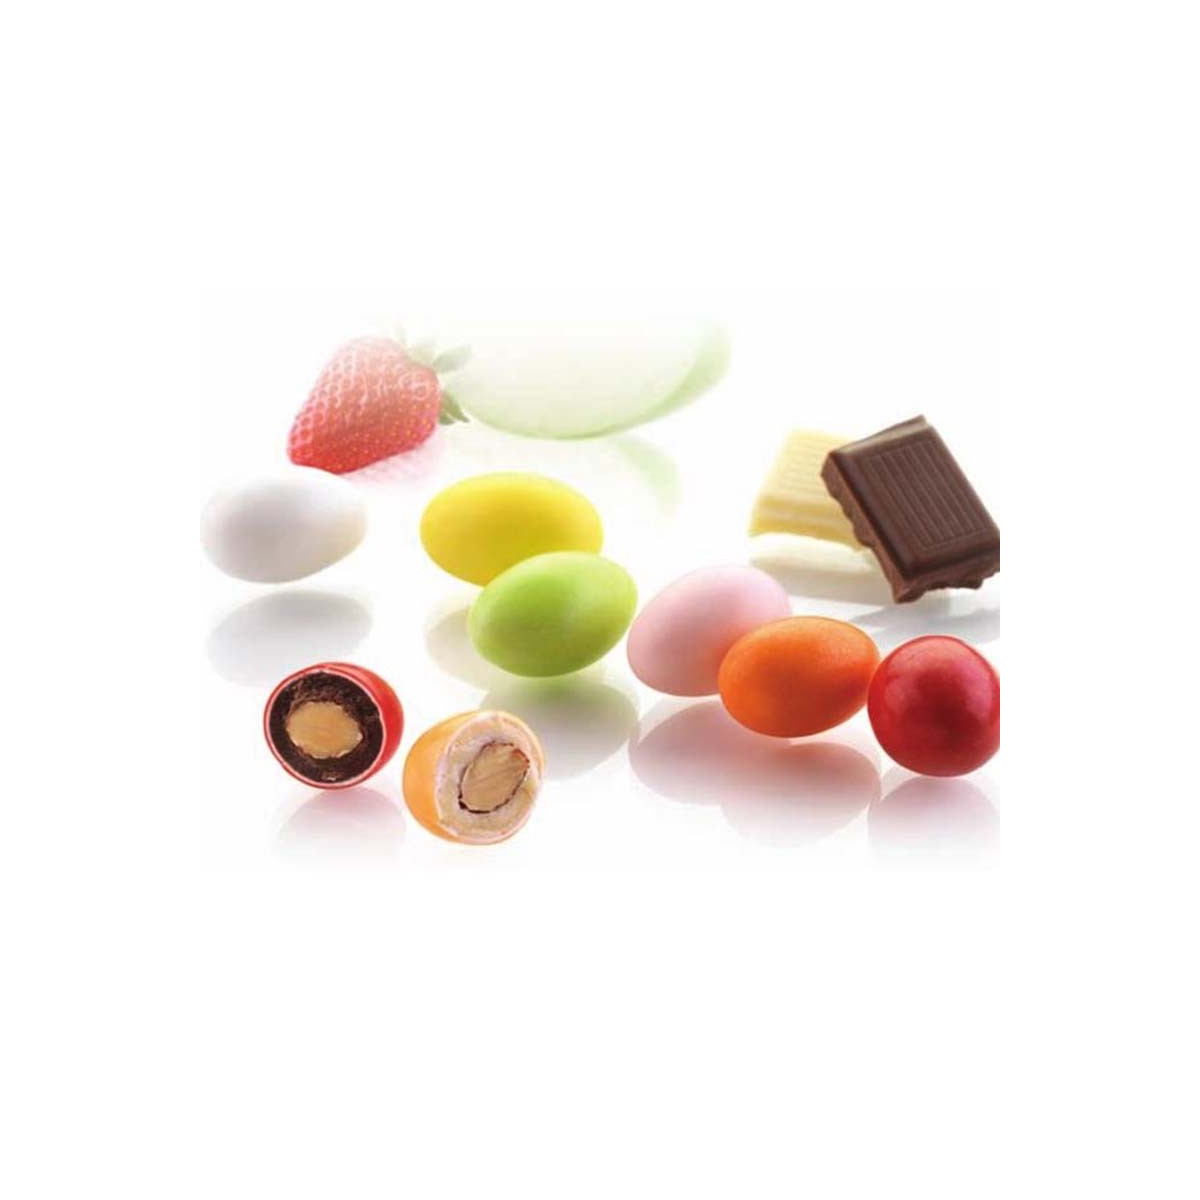 1kg Dragées Multifruits